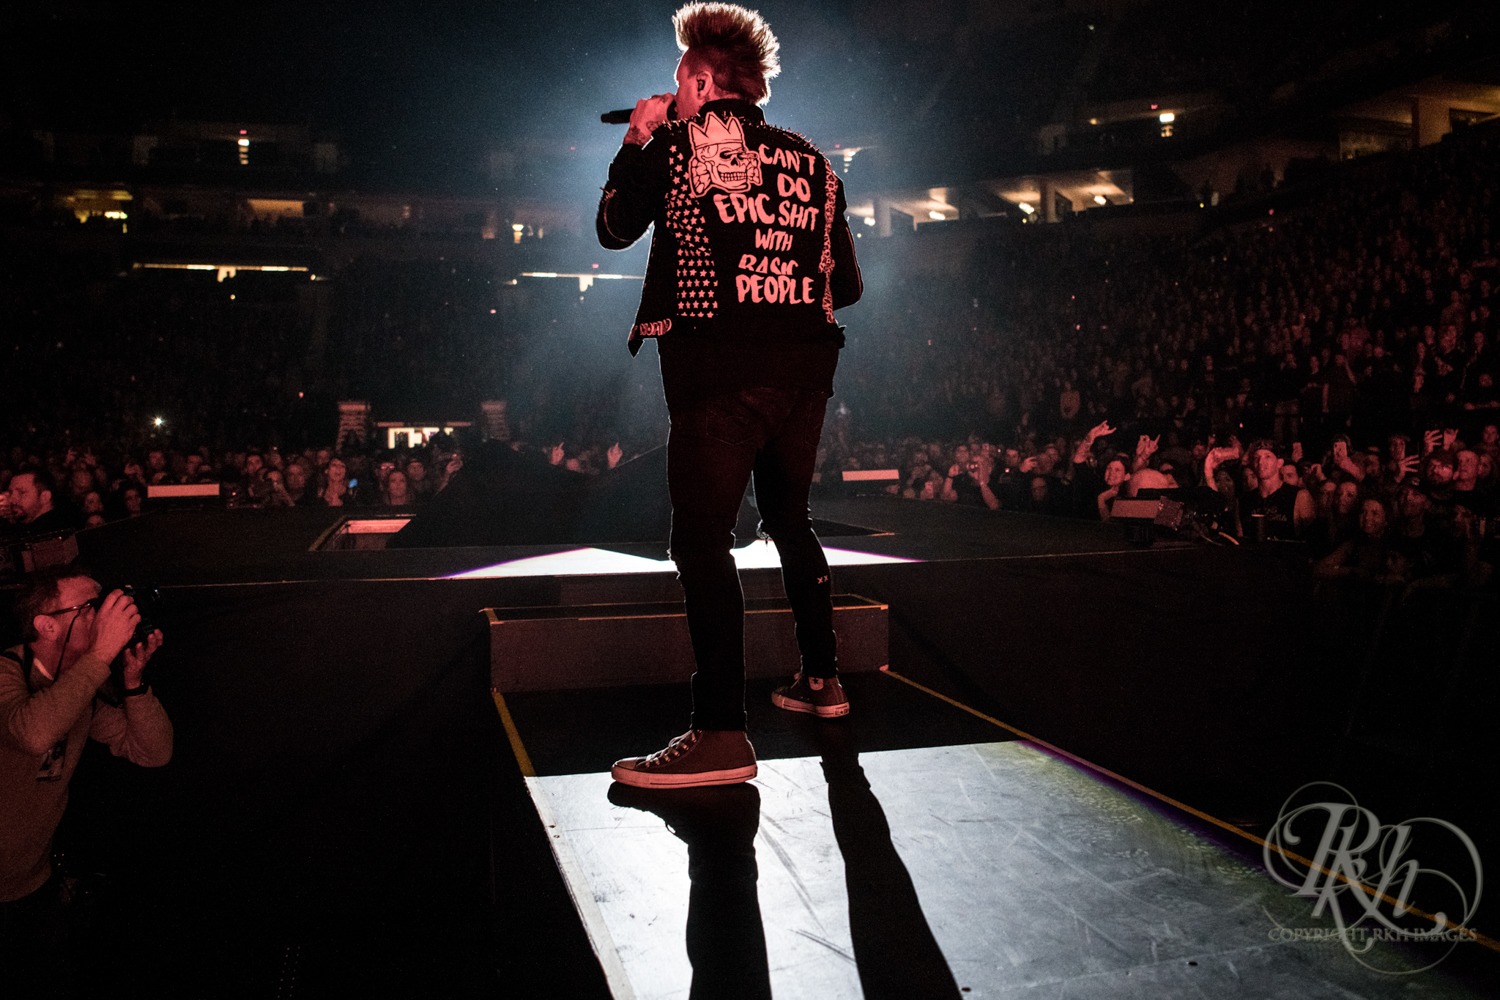 Papa Roach - Minnesota Concert Photography - Target Center - Minneapolis - RKH Images (8 of 16).jpg